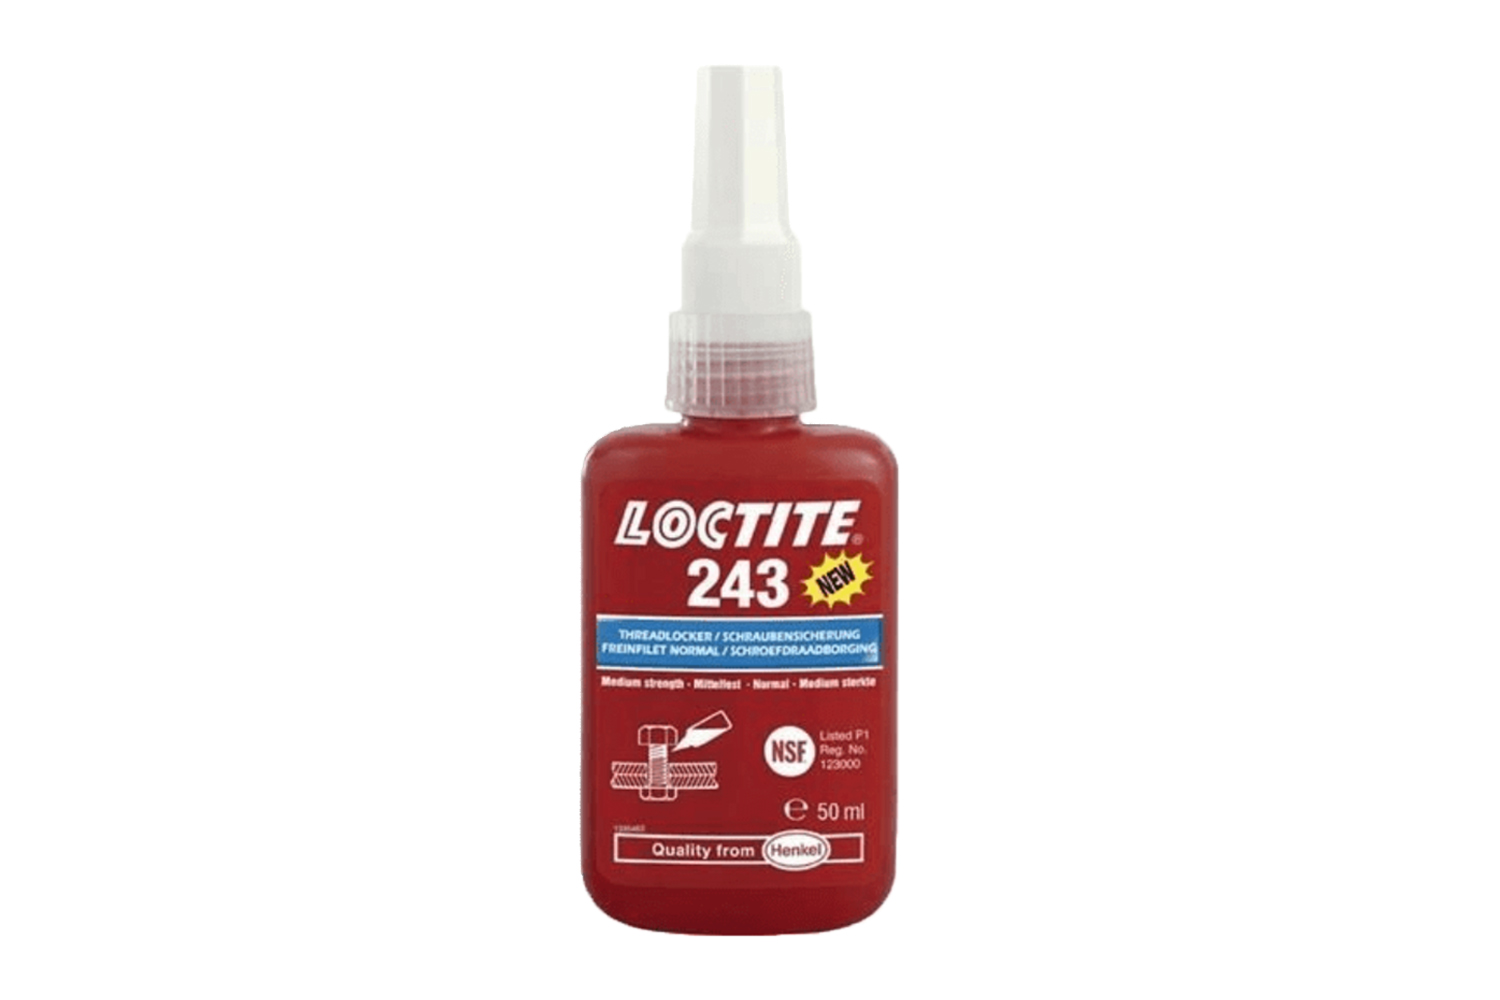 images/j2store/products/diffusees/31571-loctite-243-10ml.jpg